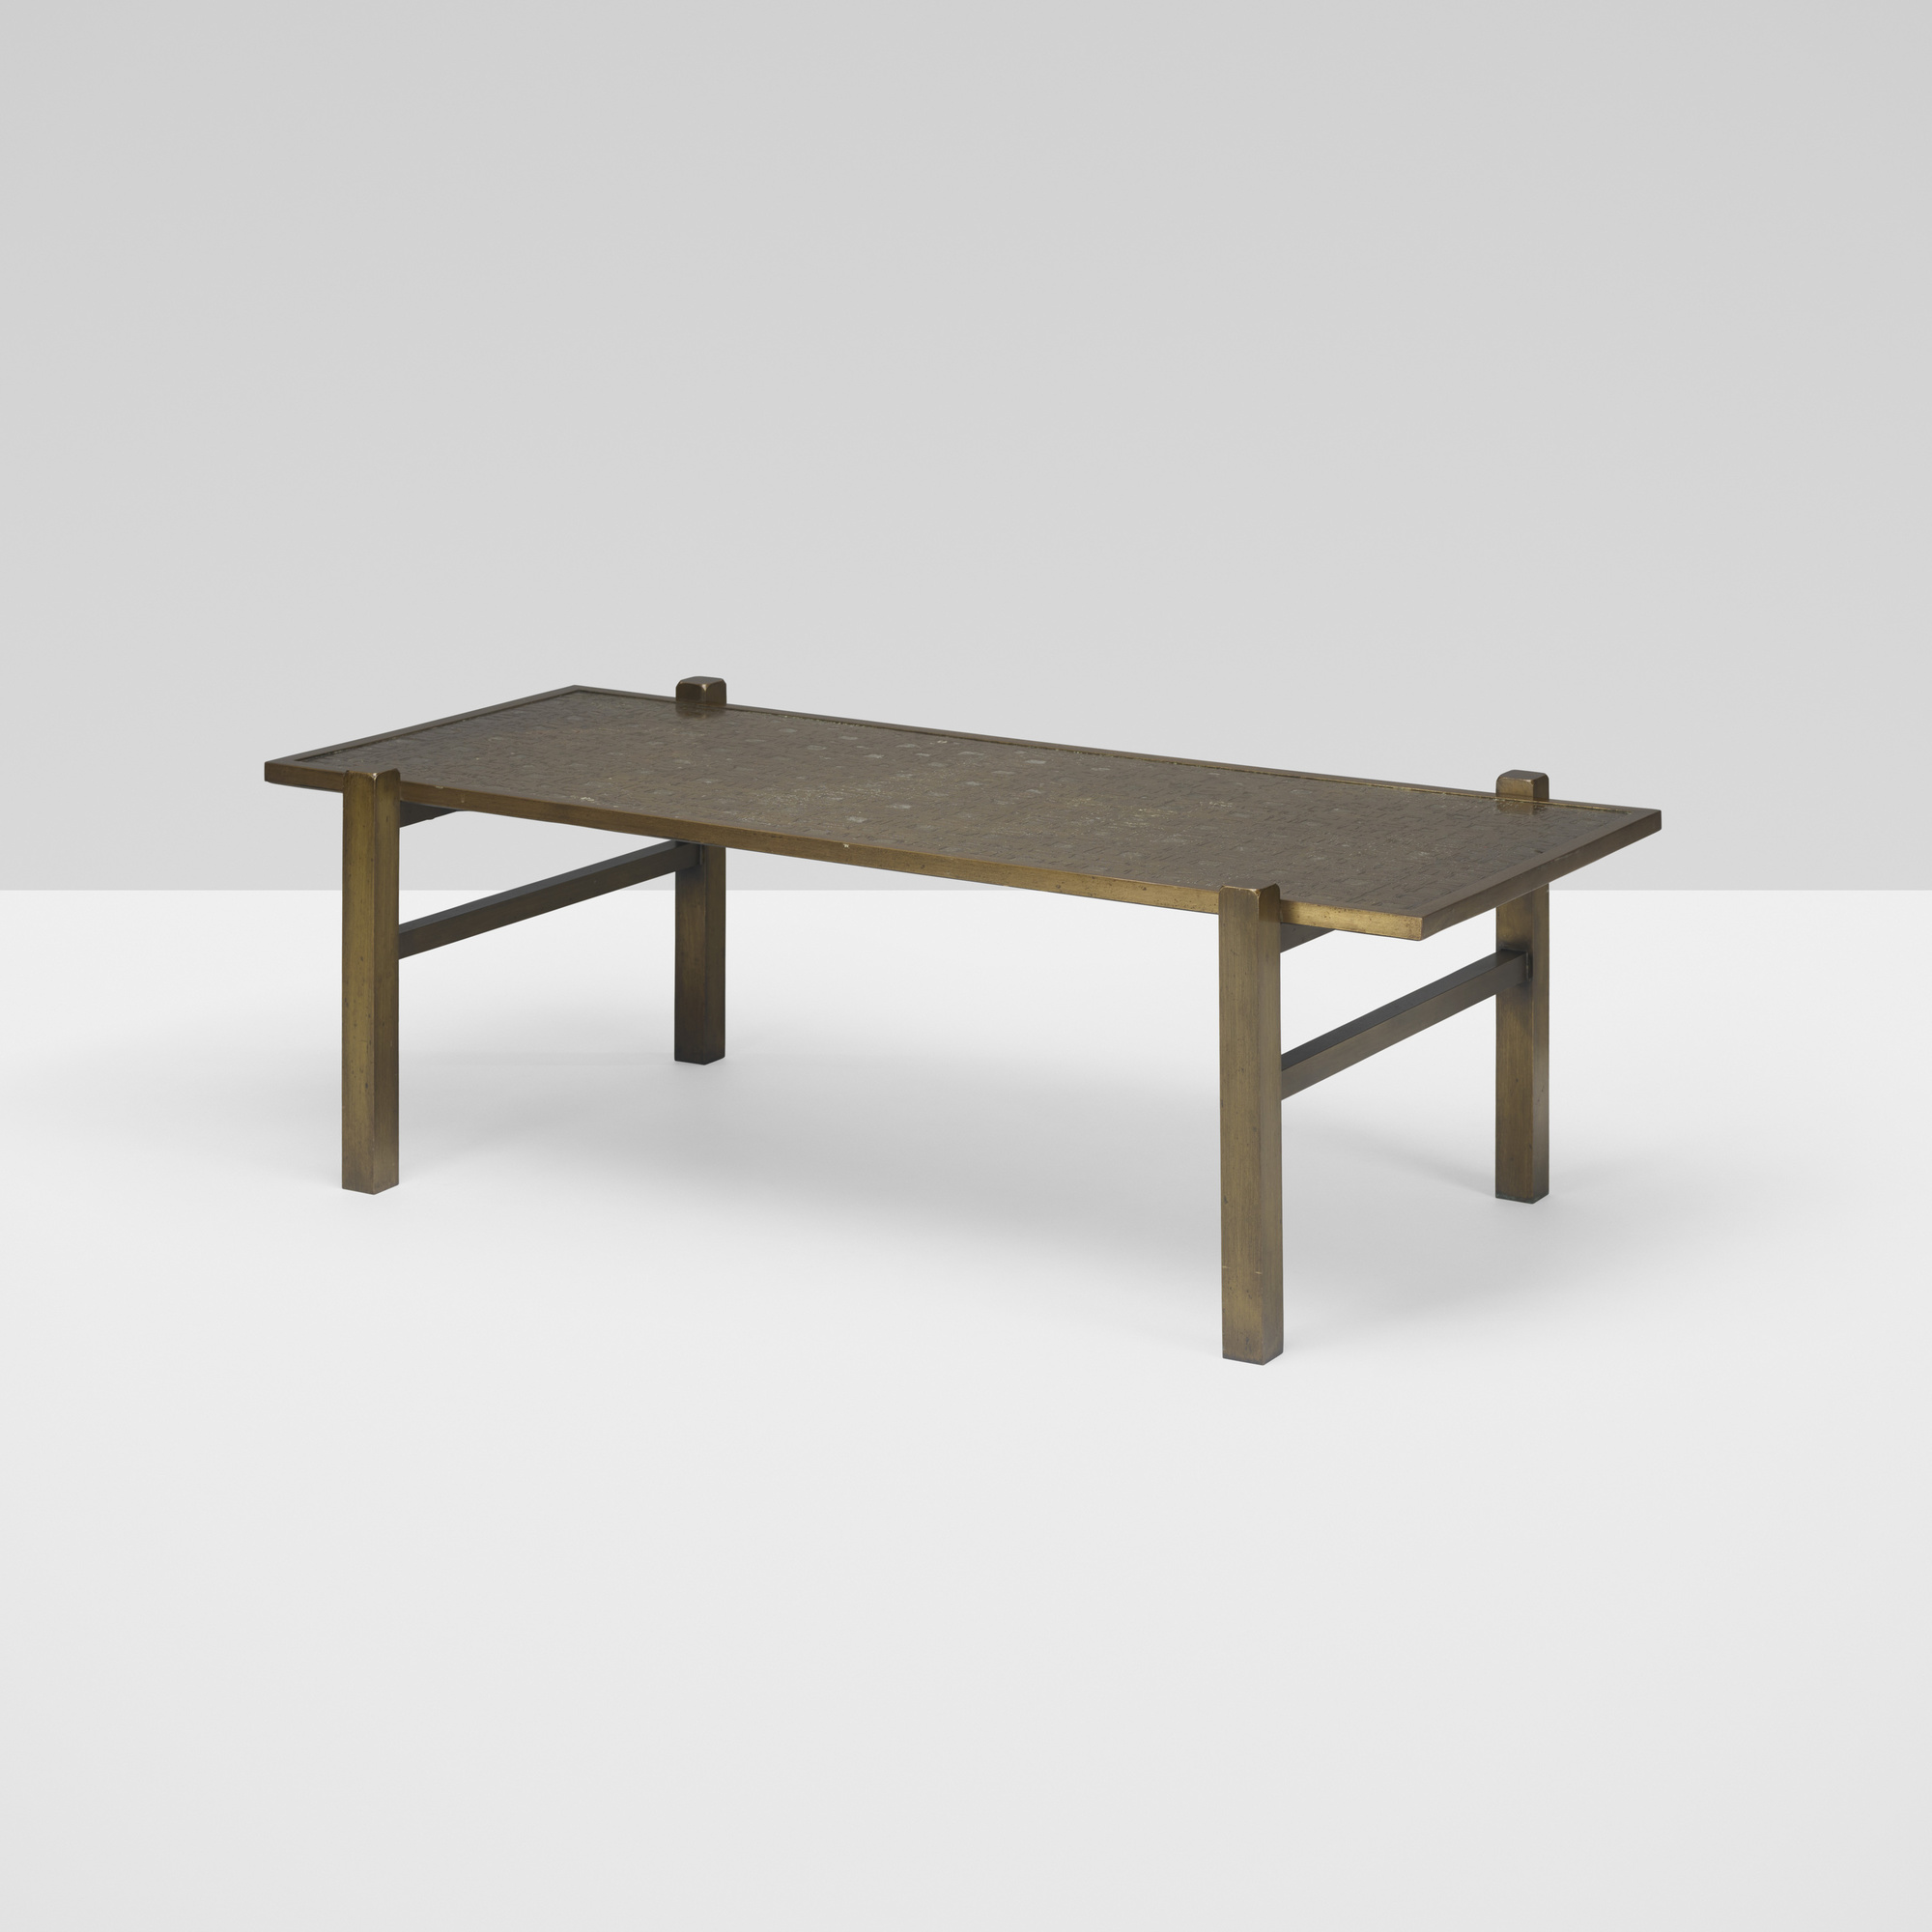 291: Philip and Kelvin LaVerne / Fantasia coffee table (1 of 1)